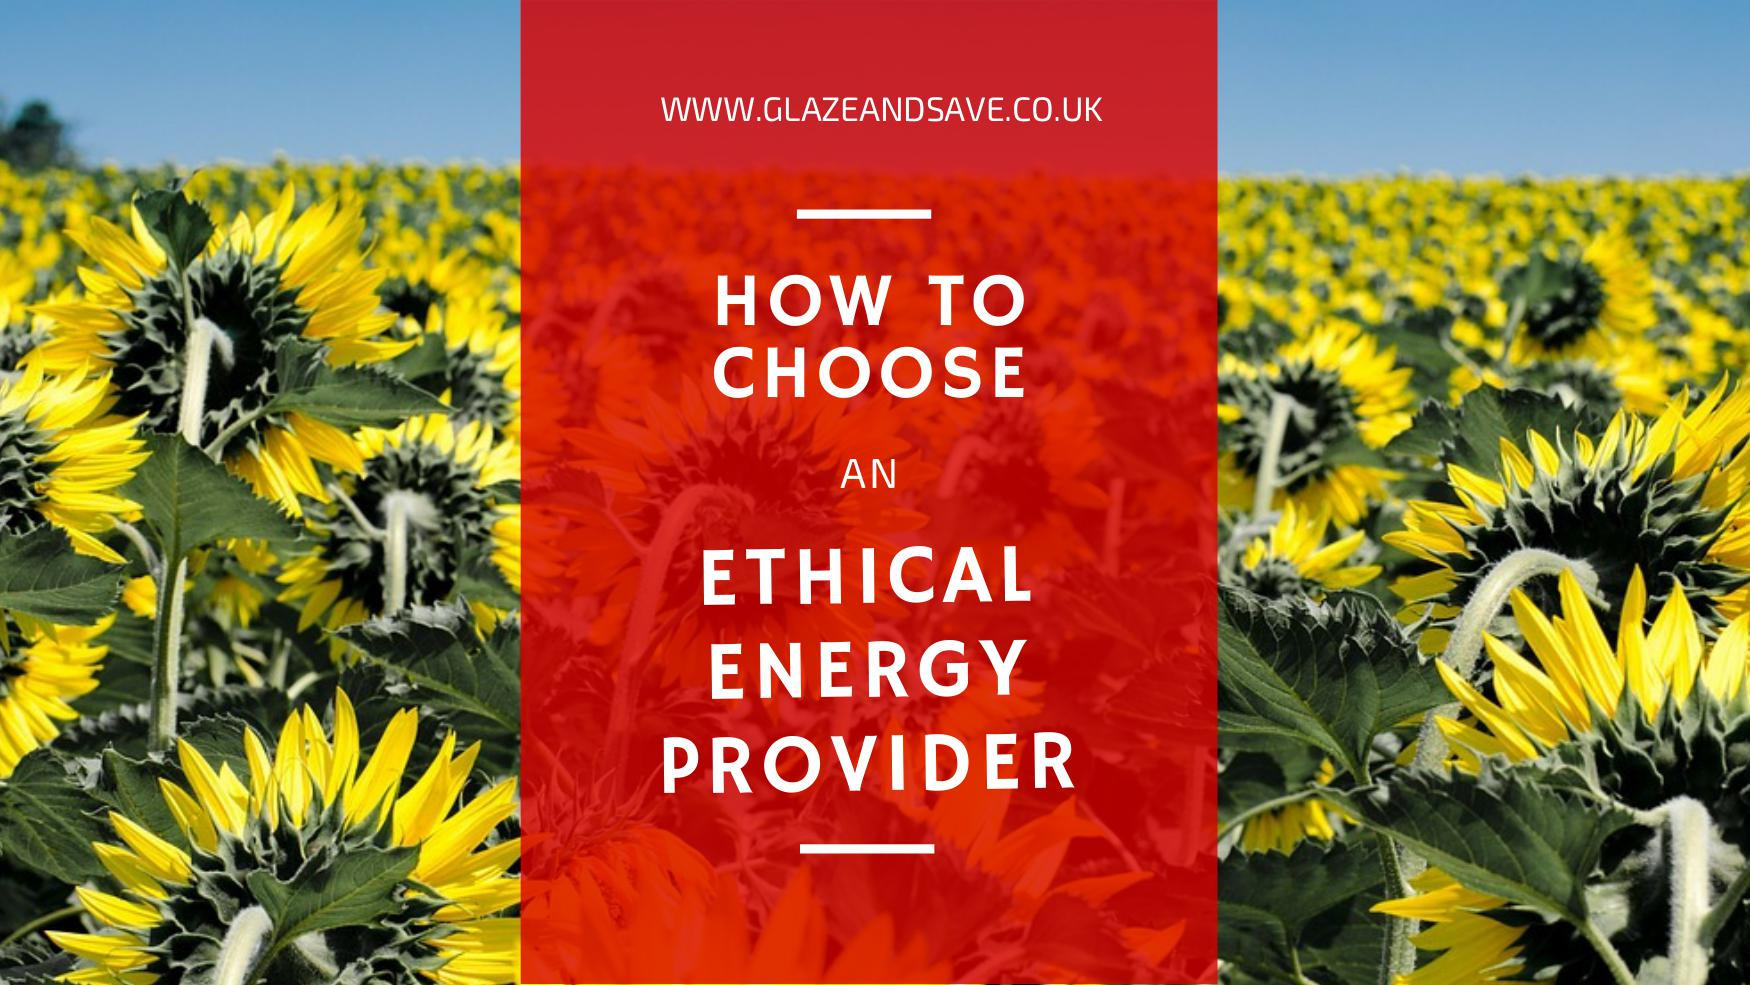 How to choose and ethical energy supplier by Glaze and Save magnetic secondary glazing and draught proofing specialists based in Perth UK and covering the whole of Scotland